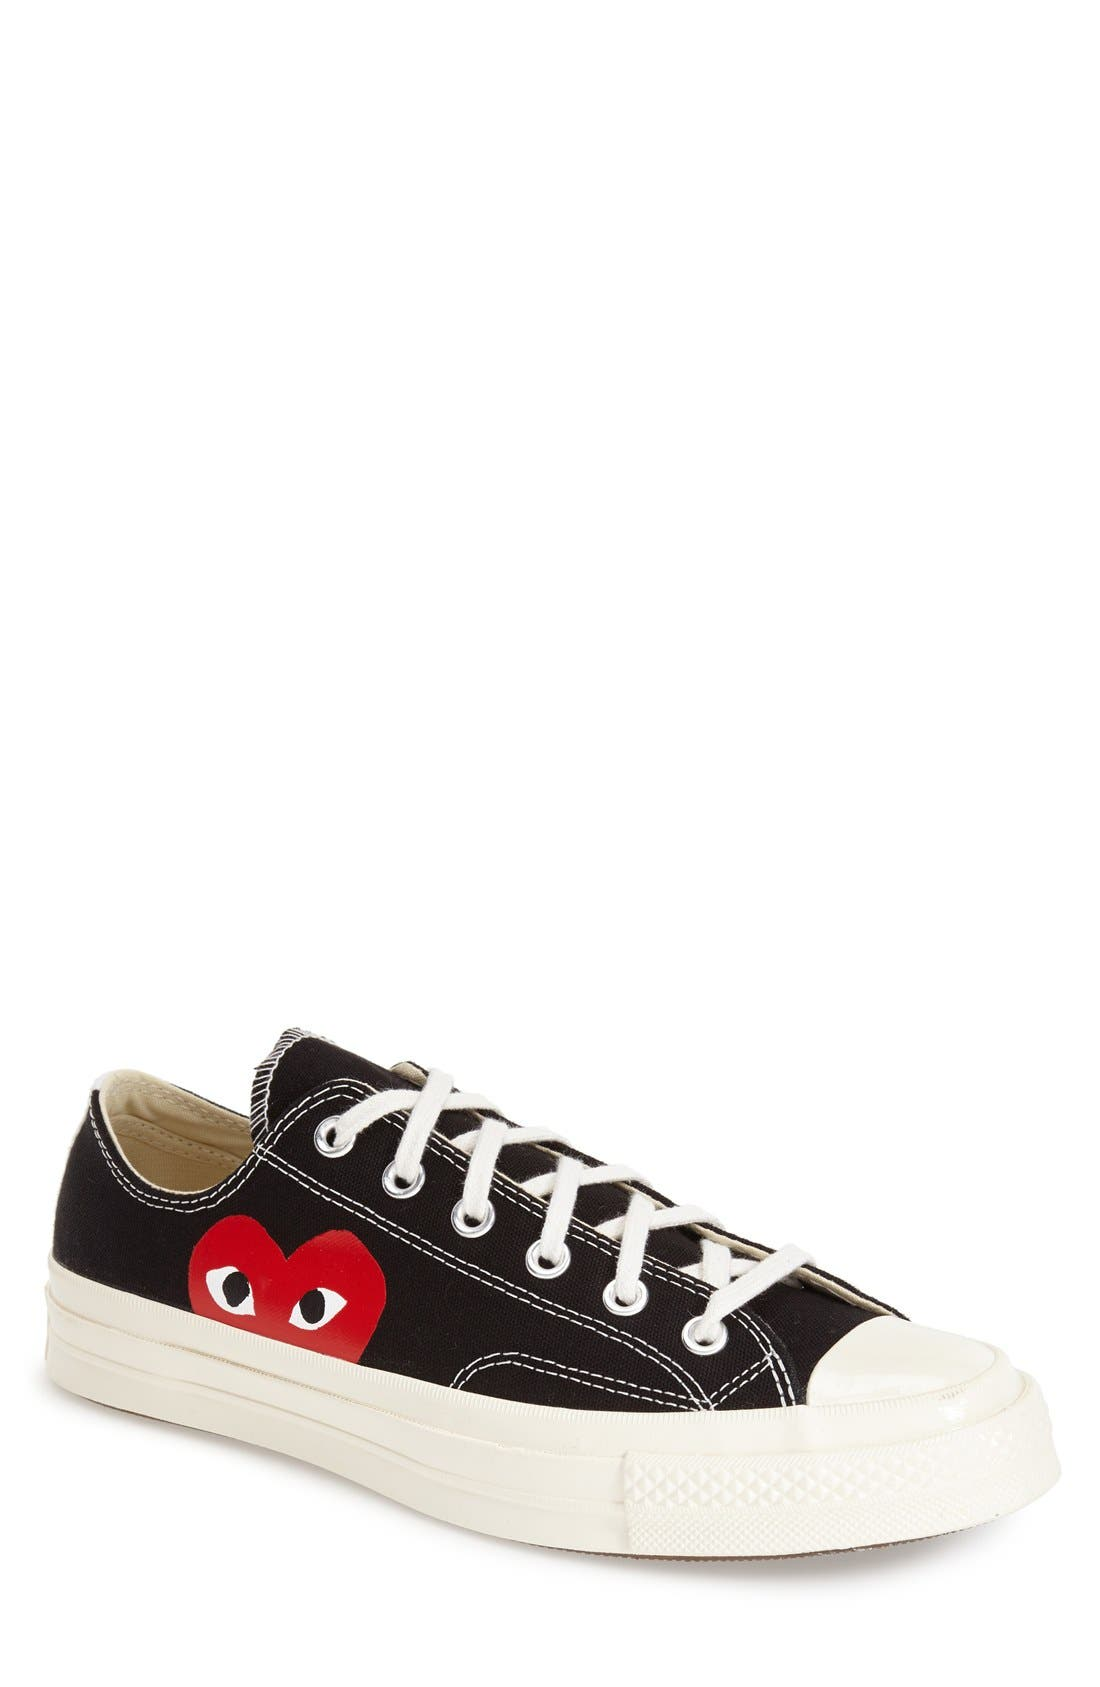 Alternate Image 1 Selected - Comme des Garçons PLAY x Converse Chuck Taylor® Low Top Sneaker (Men)